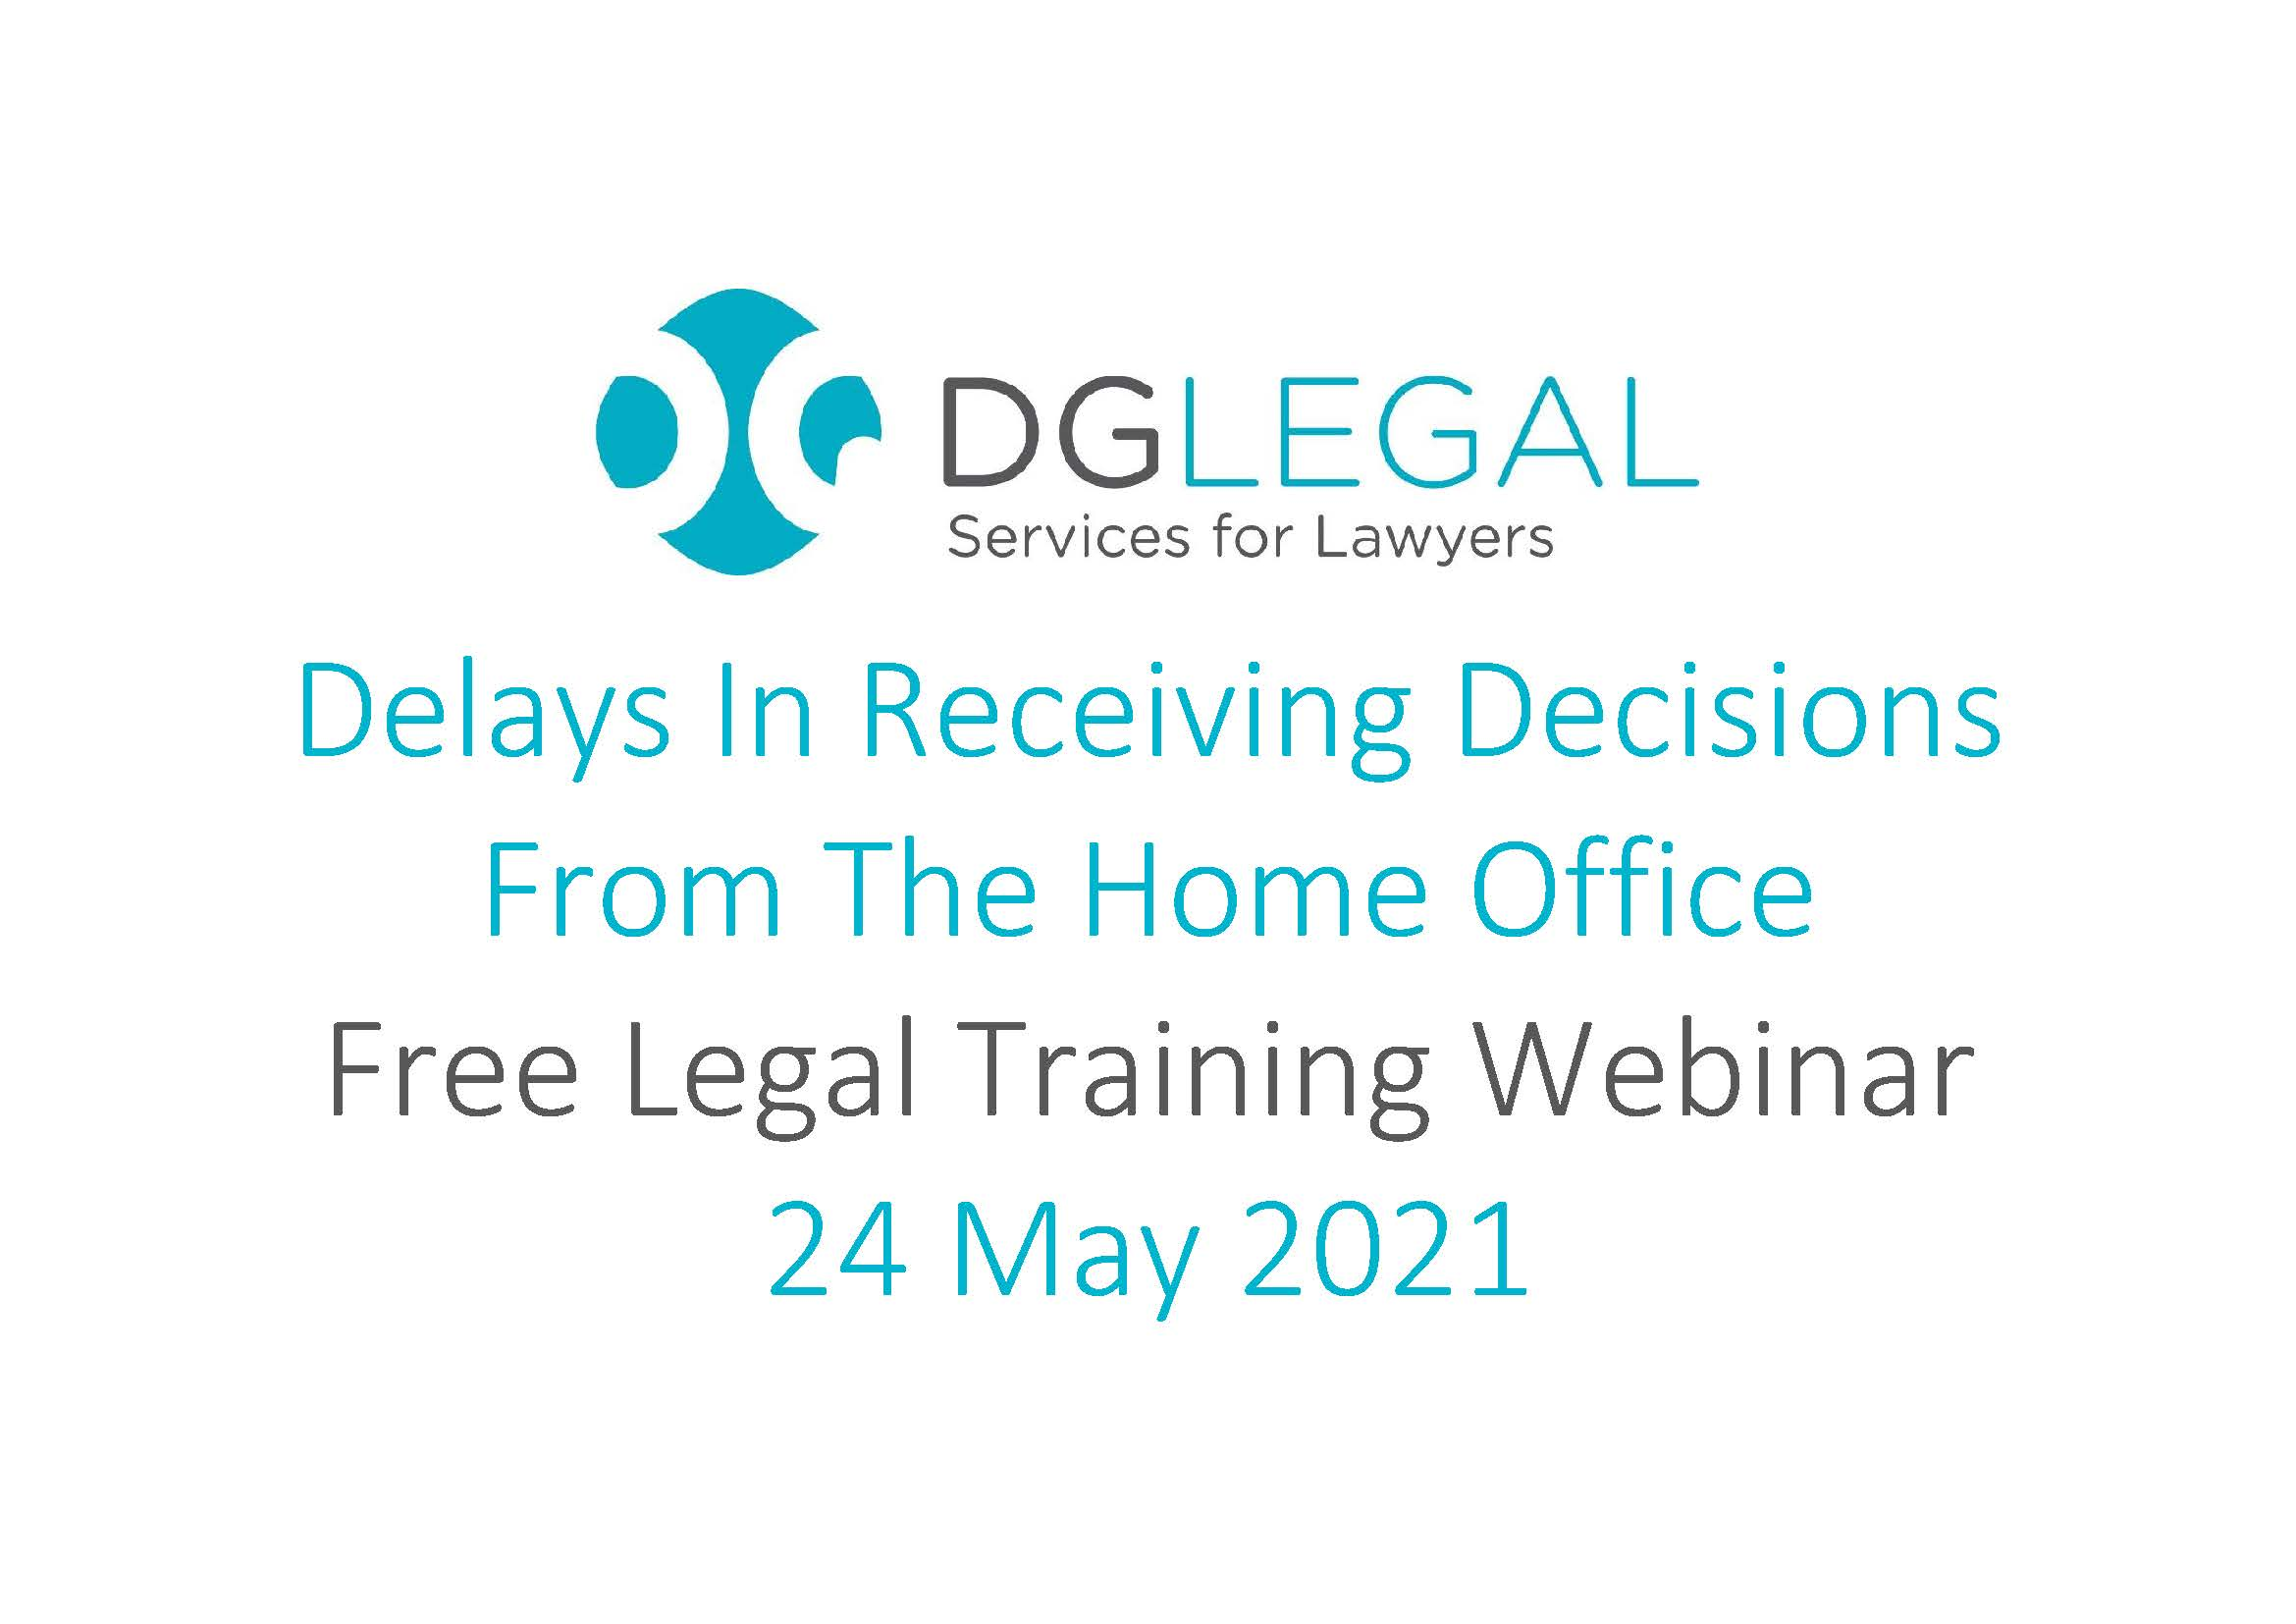 Delays In Receiving Decisions From The Home Office